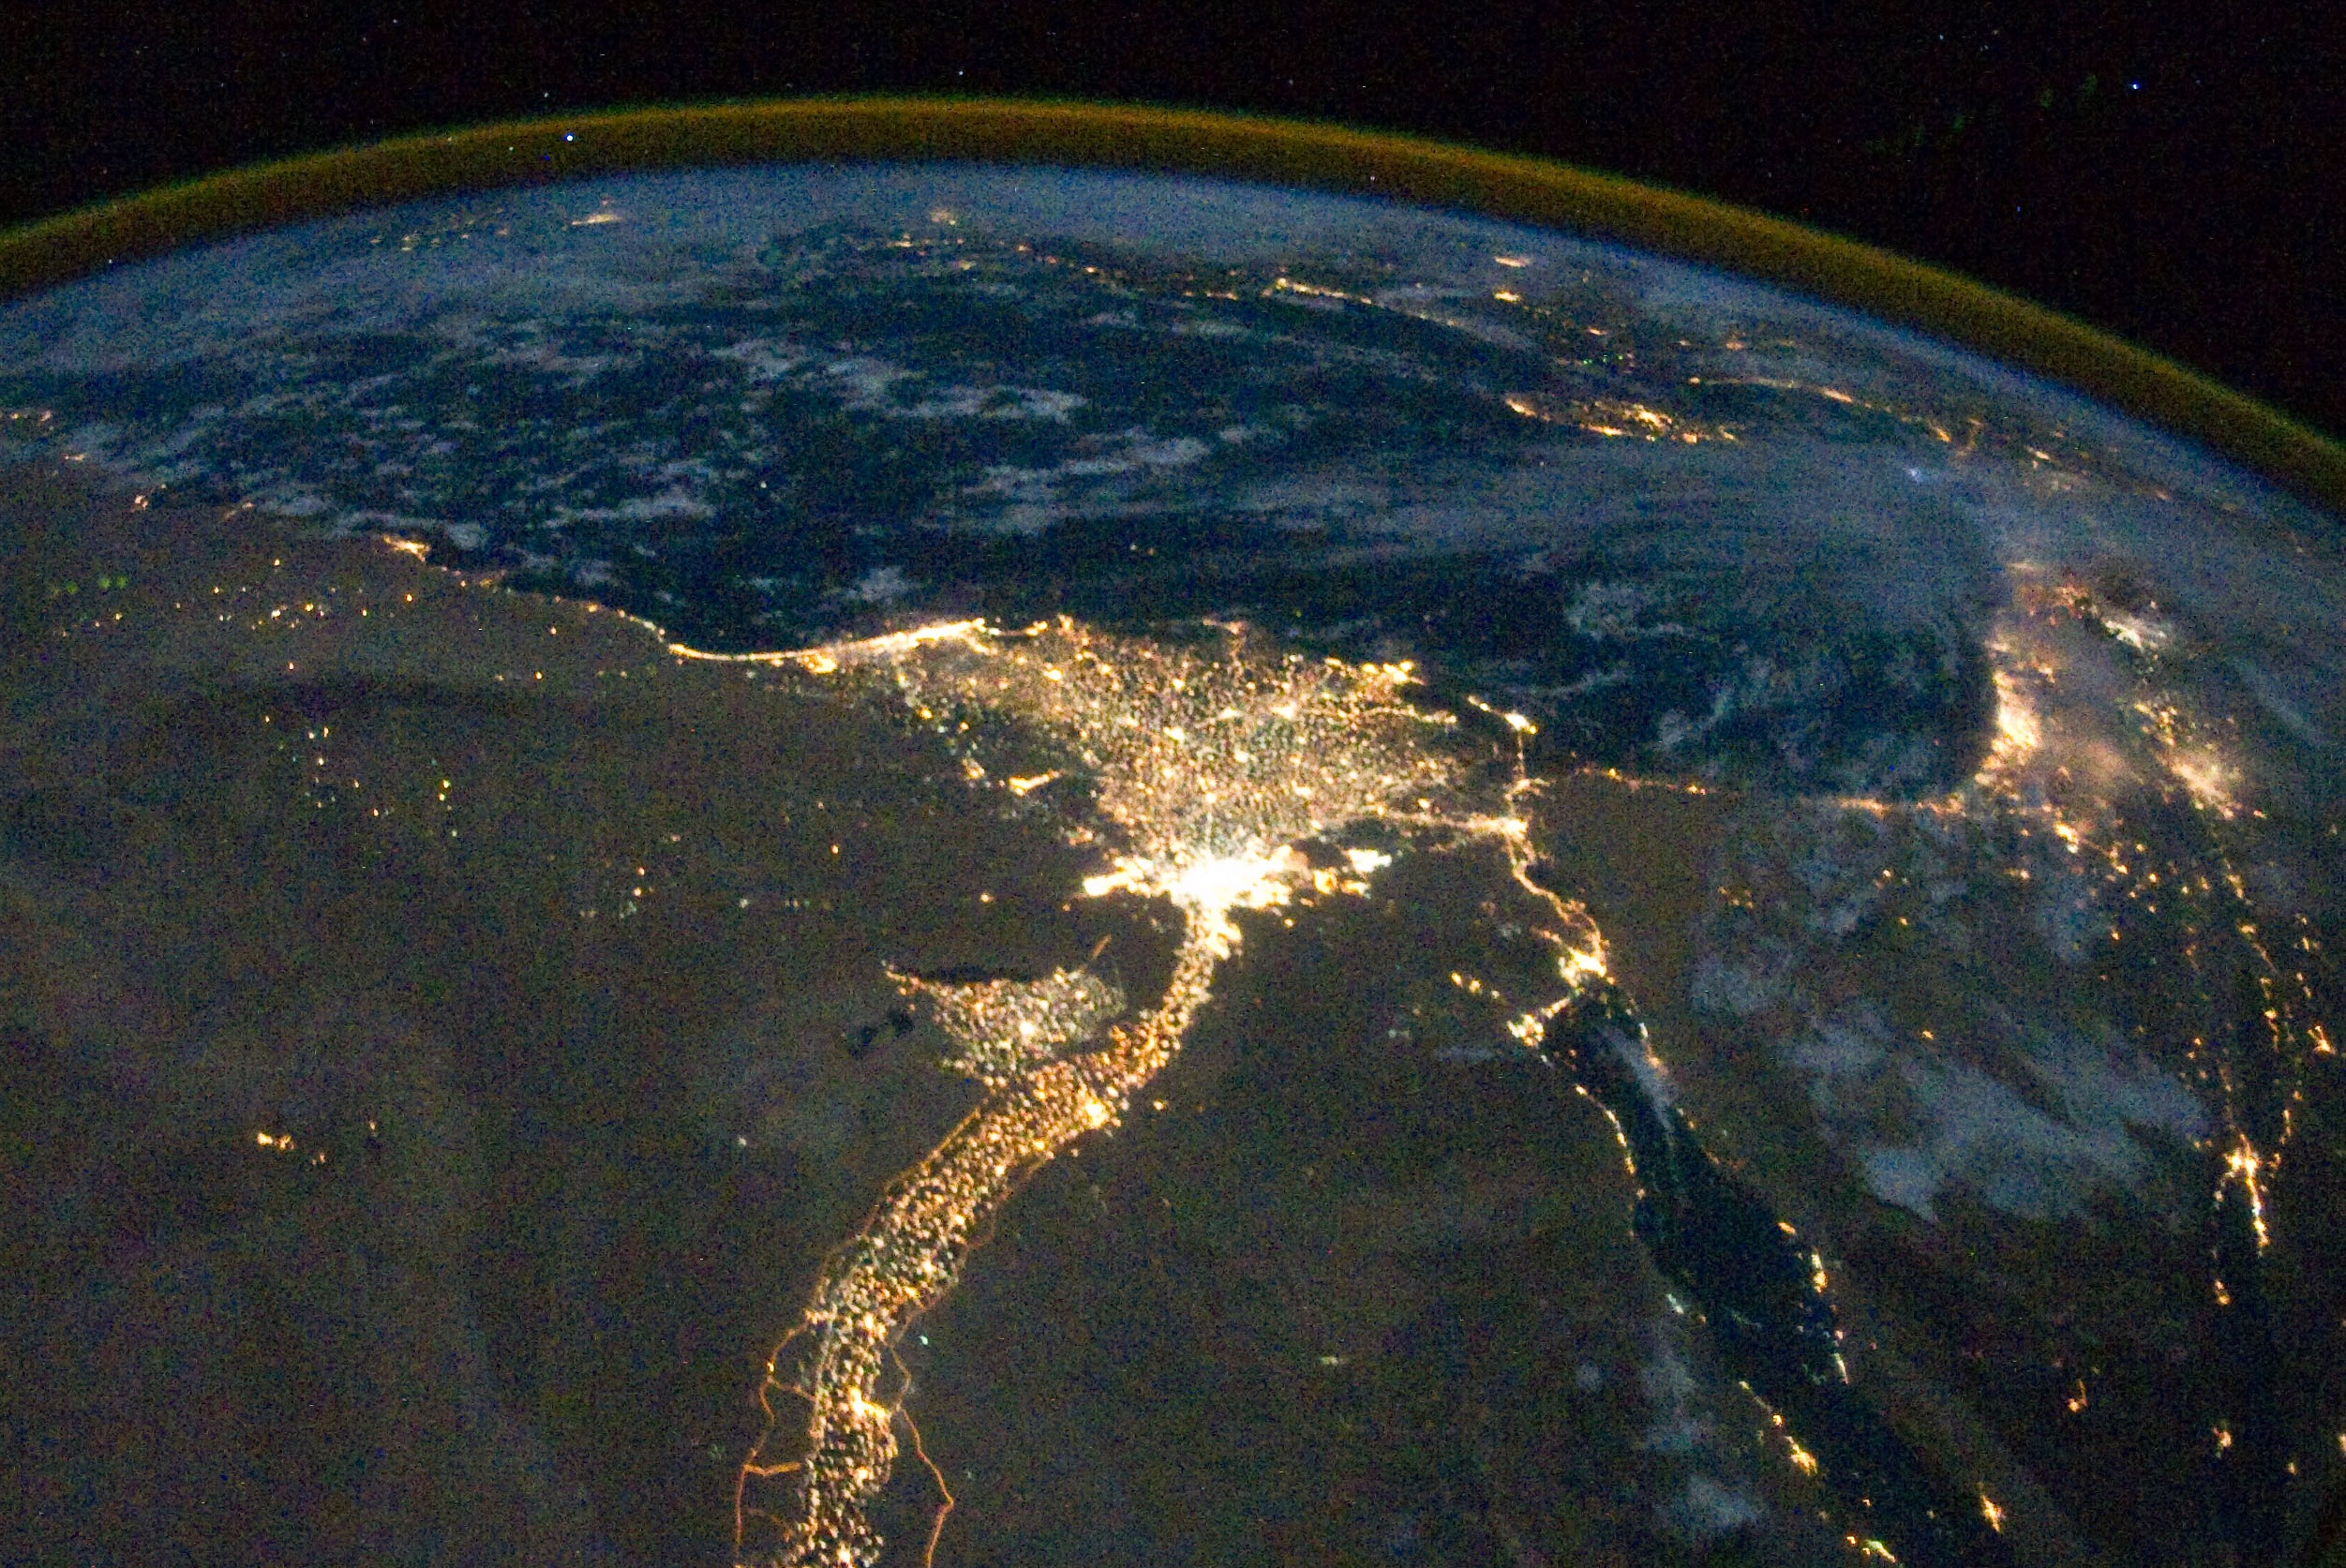 Описание nile river delta at night cropped jpg